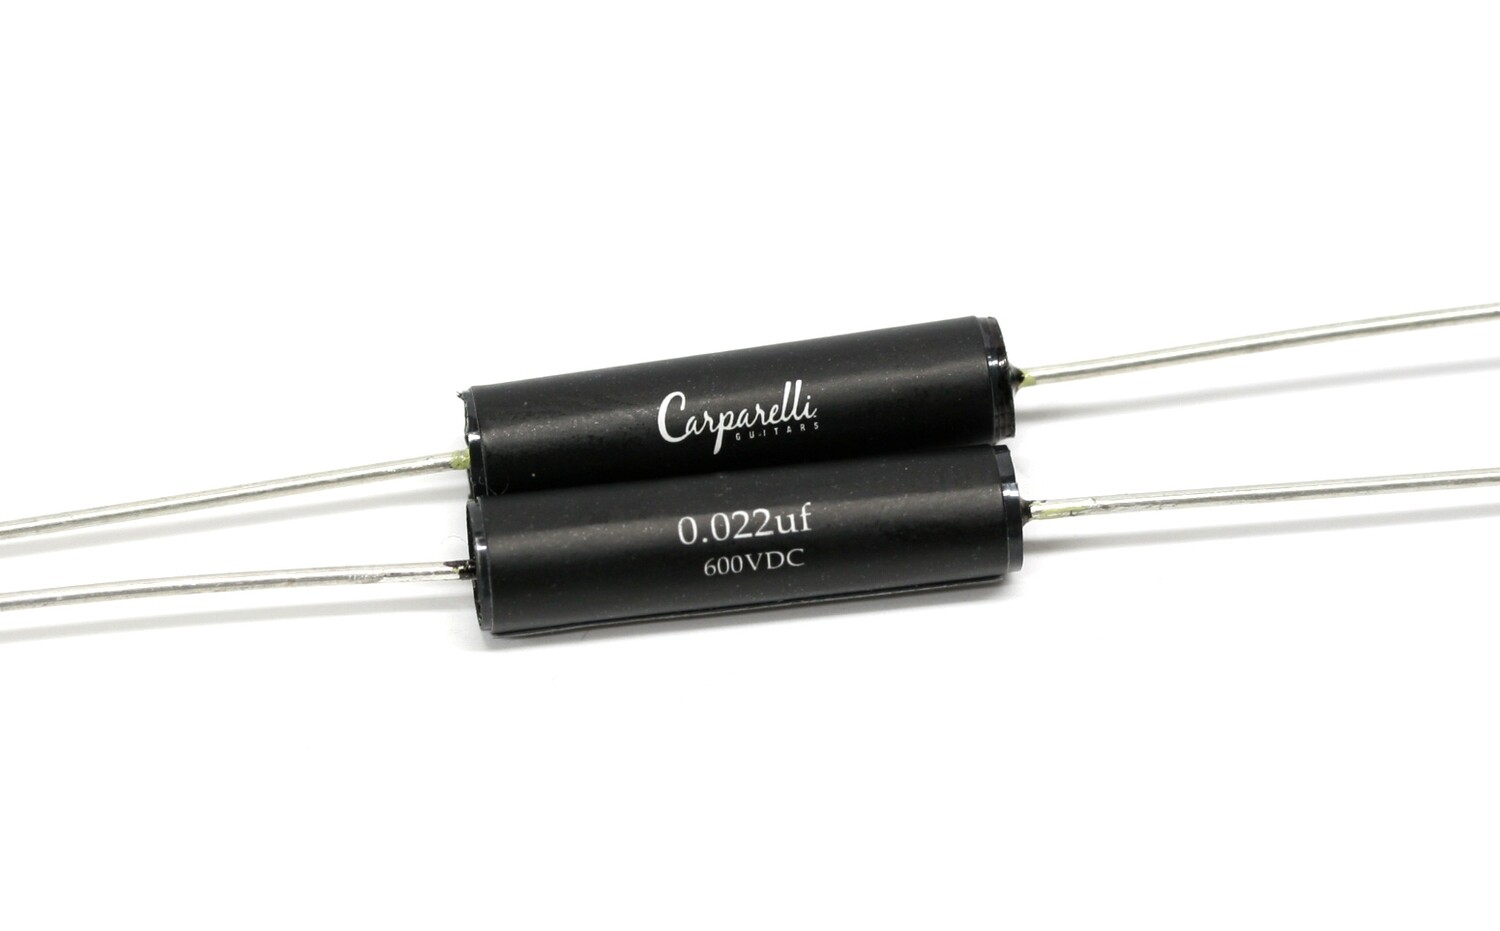 1 x Carparelli Black Dog Capacitors. 0.022uf